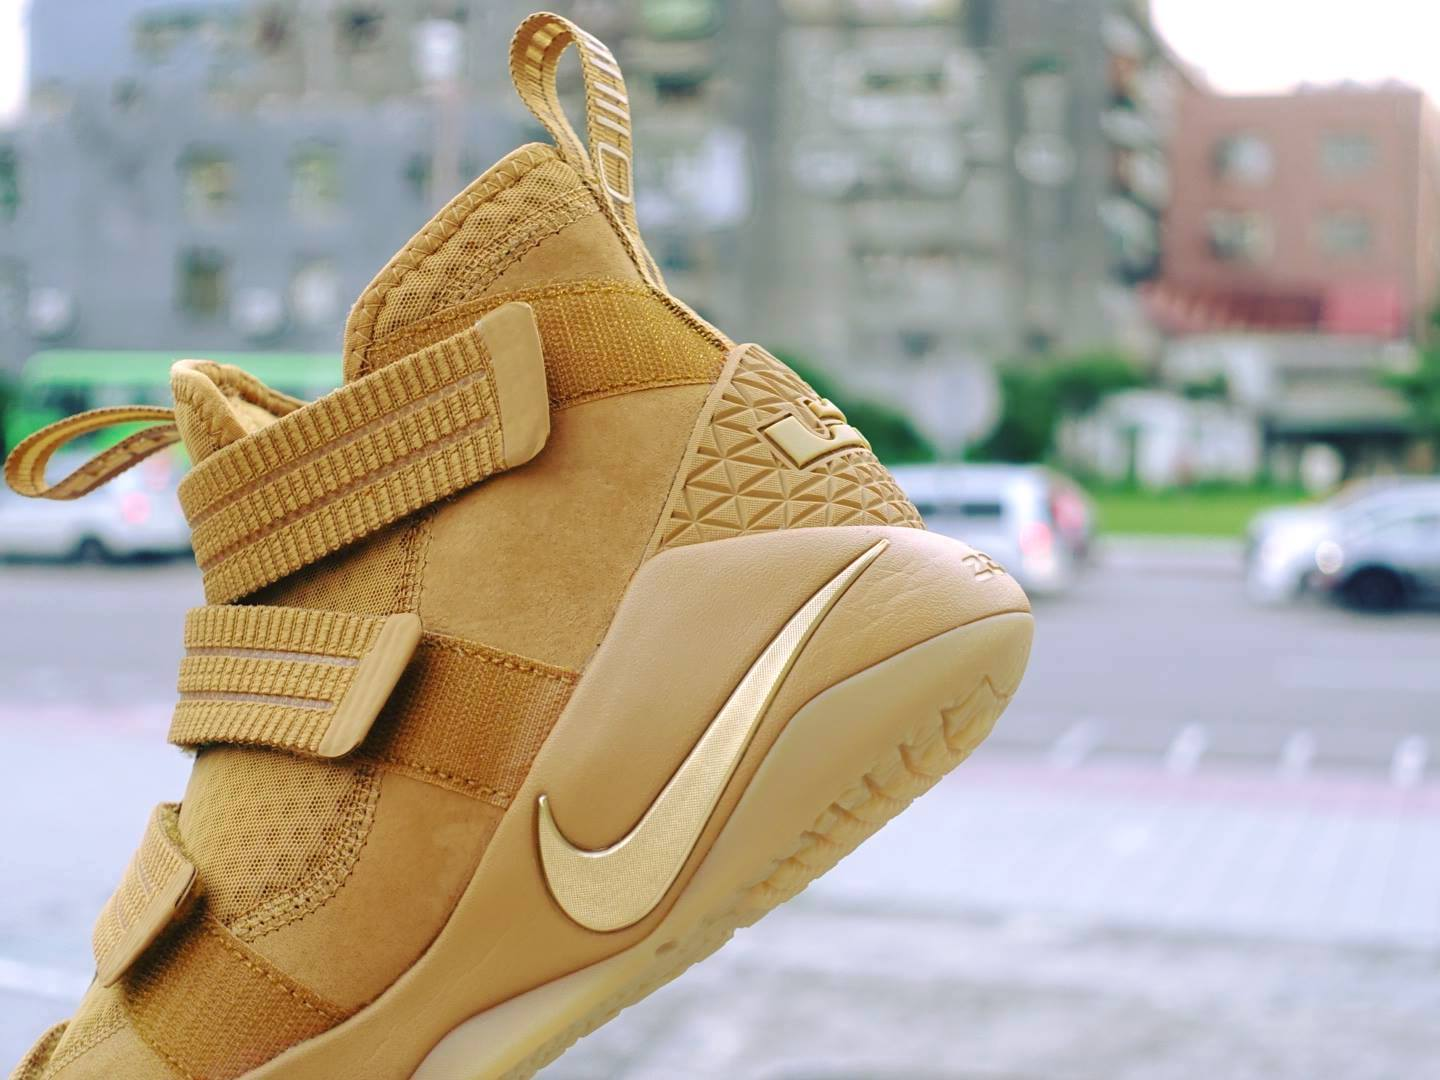 Nike LeBron Soldier 11 SFG Wheat Release Date 897647-700 (4)